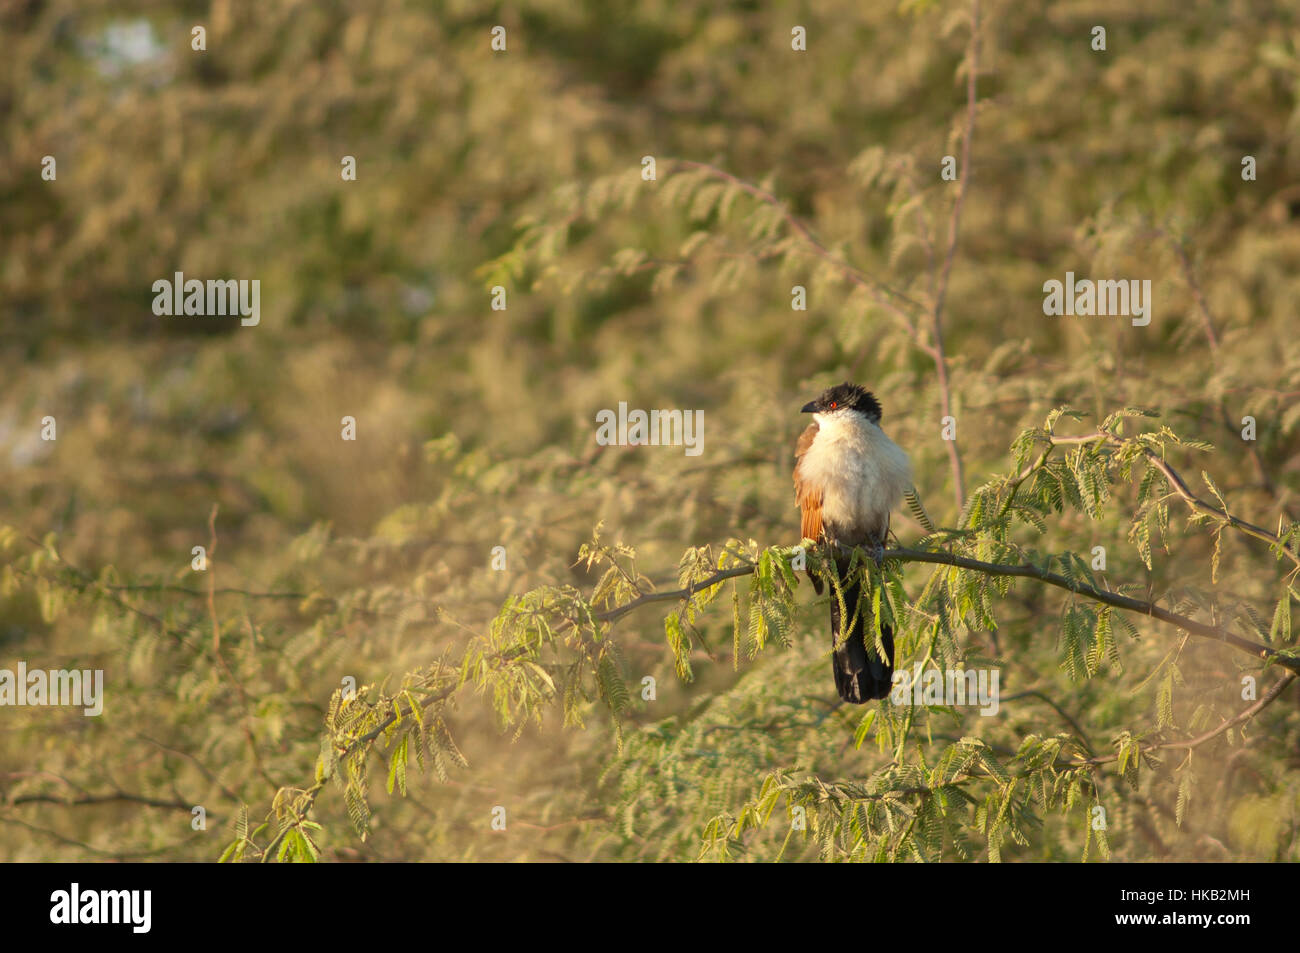 Senegal coucal (Centropus senegalensis). Langue de Barbarie National Park. Saint-Louis. Senegal. - Stock Image